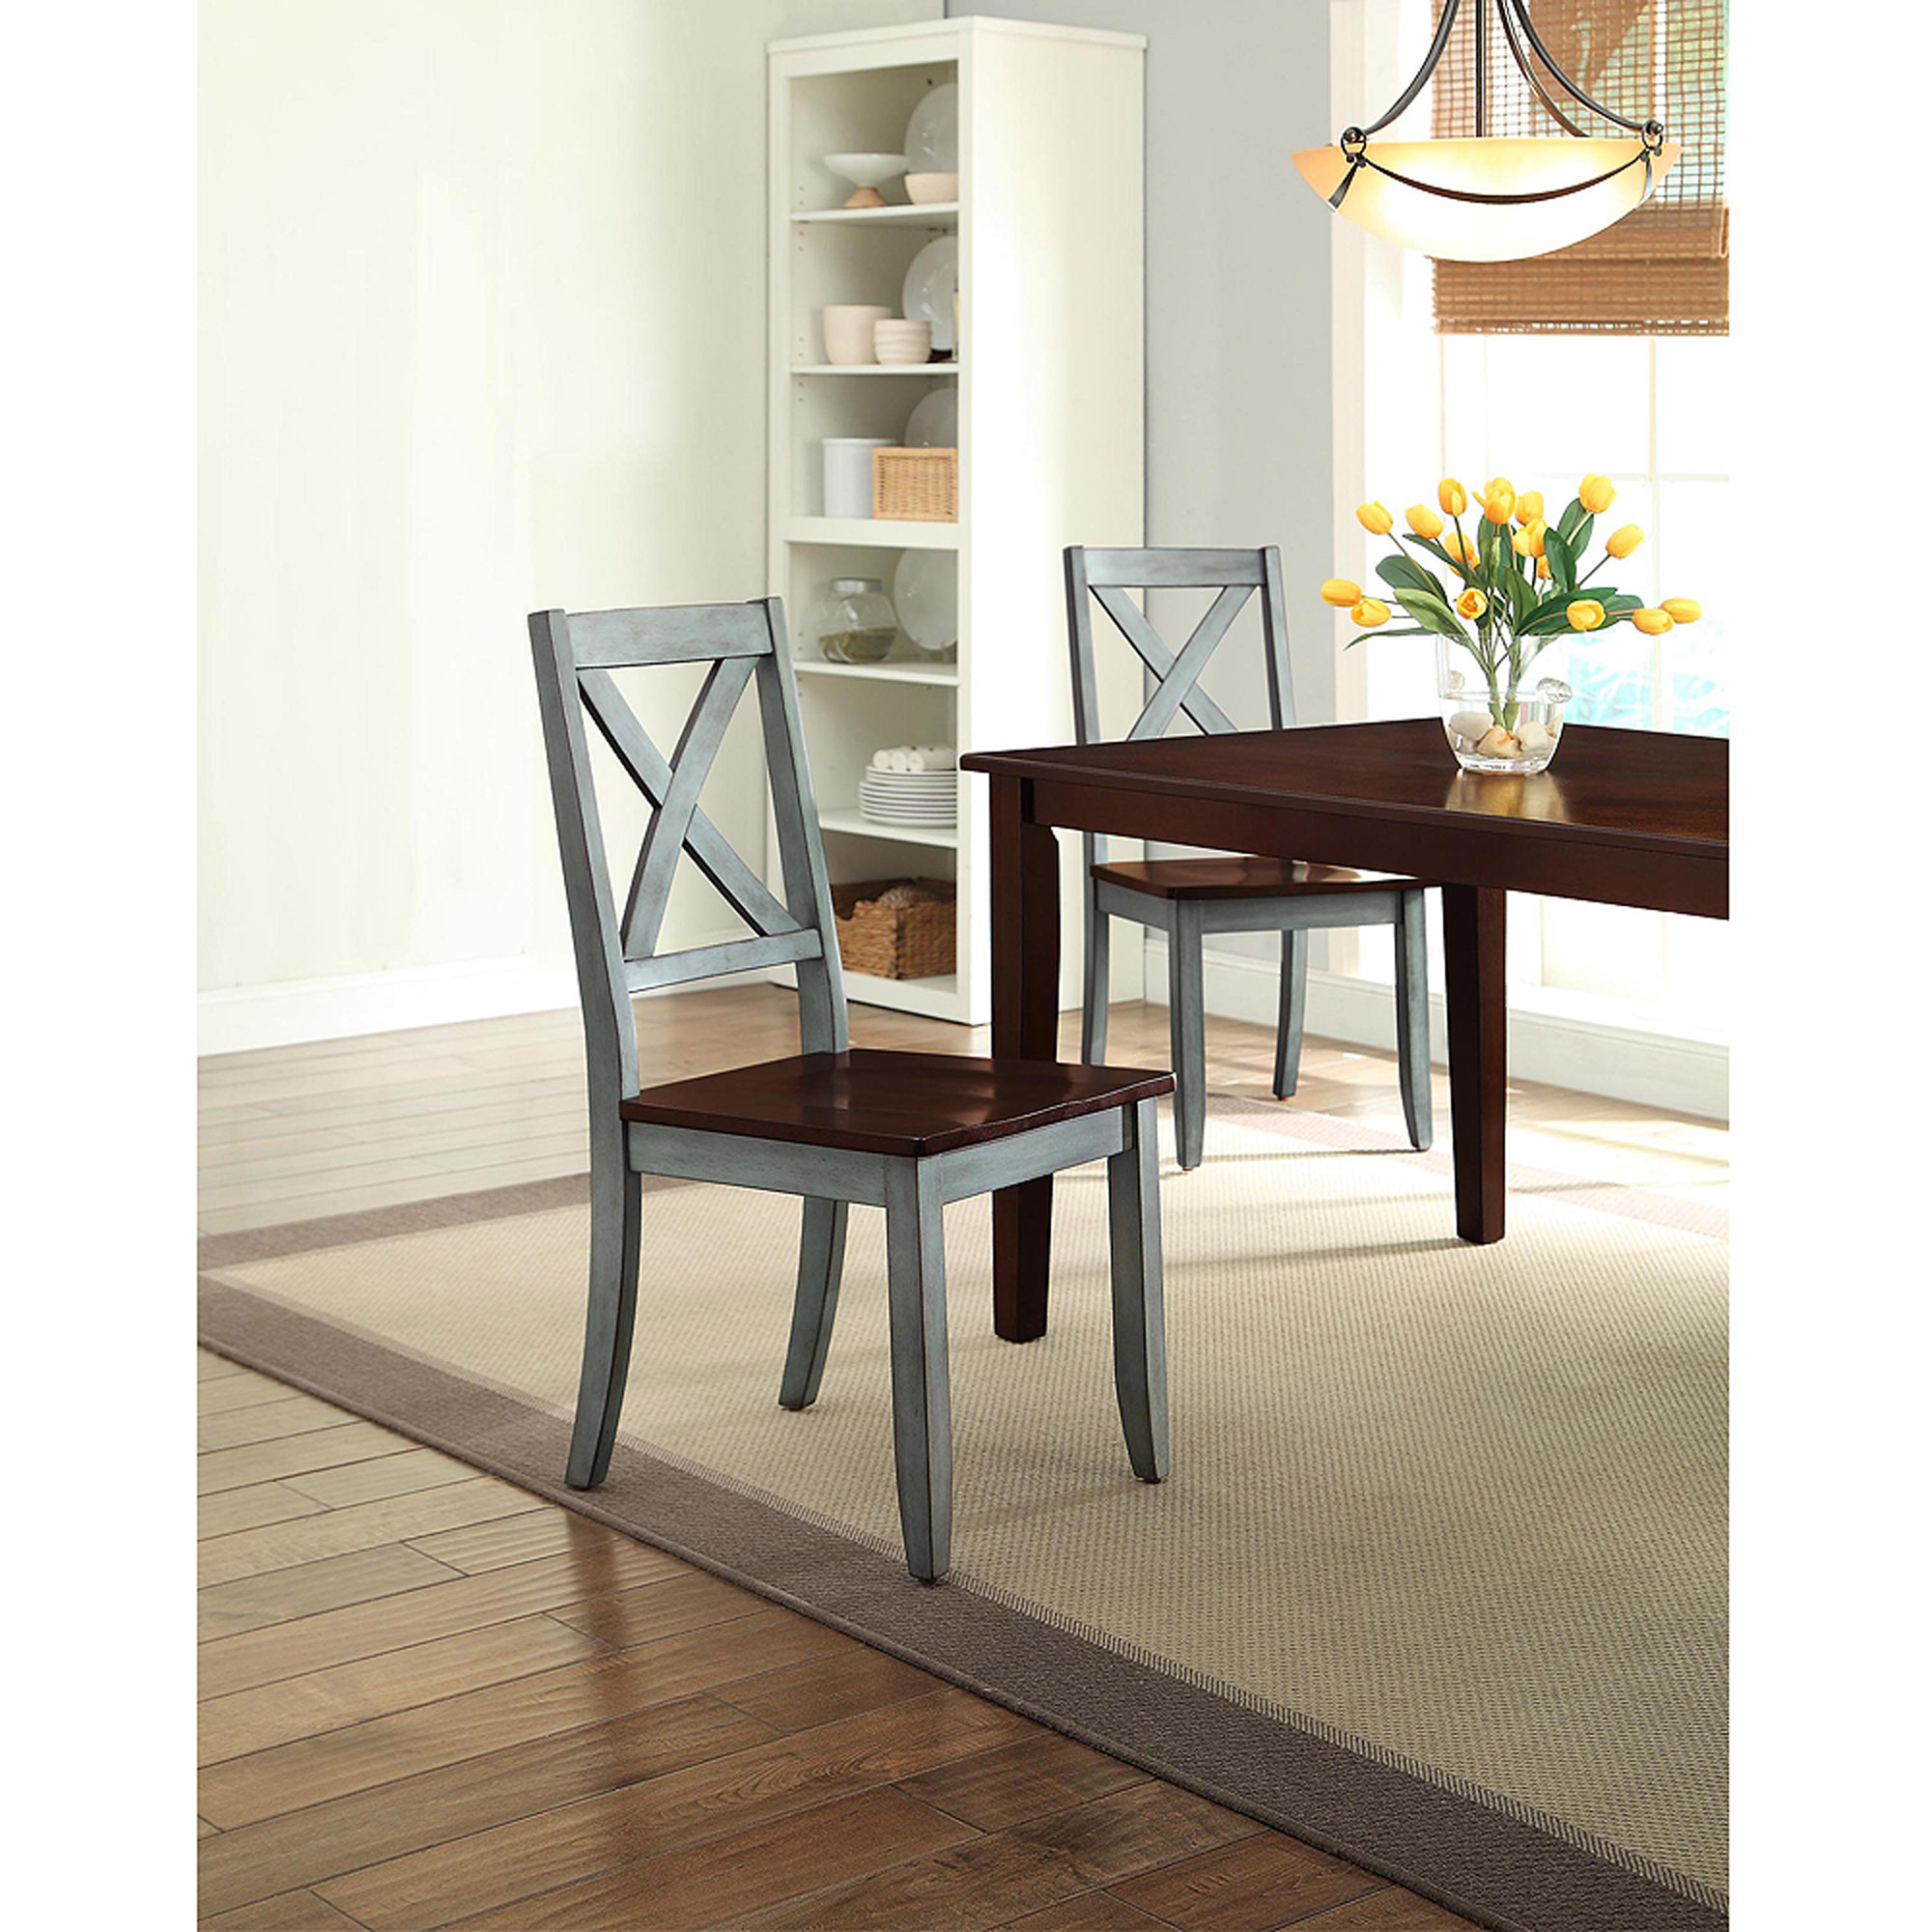 Better Homes And Gardens Maddox Crossing Dining Chair Blue Set Of 2